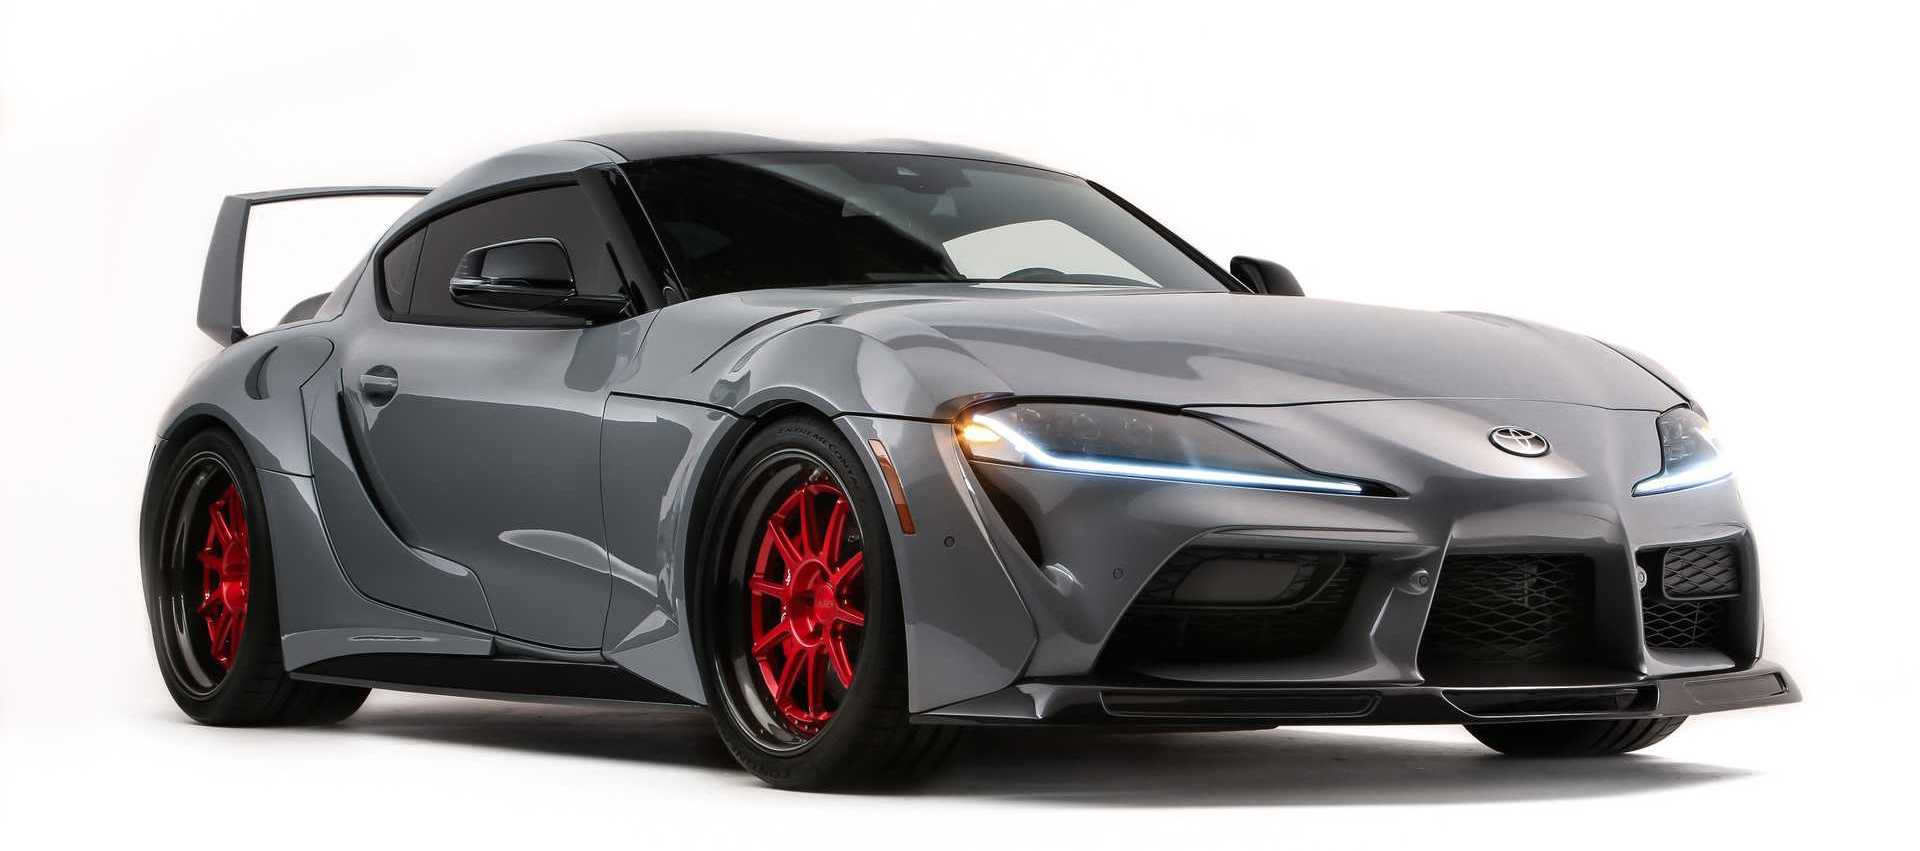 Toyota GR Supra HyperBoost Edition Hits SEMA With More Than 750 HP